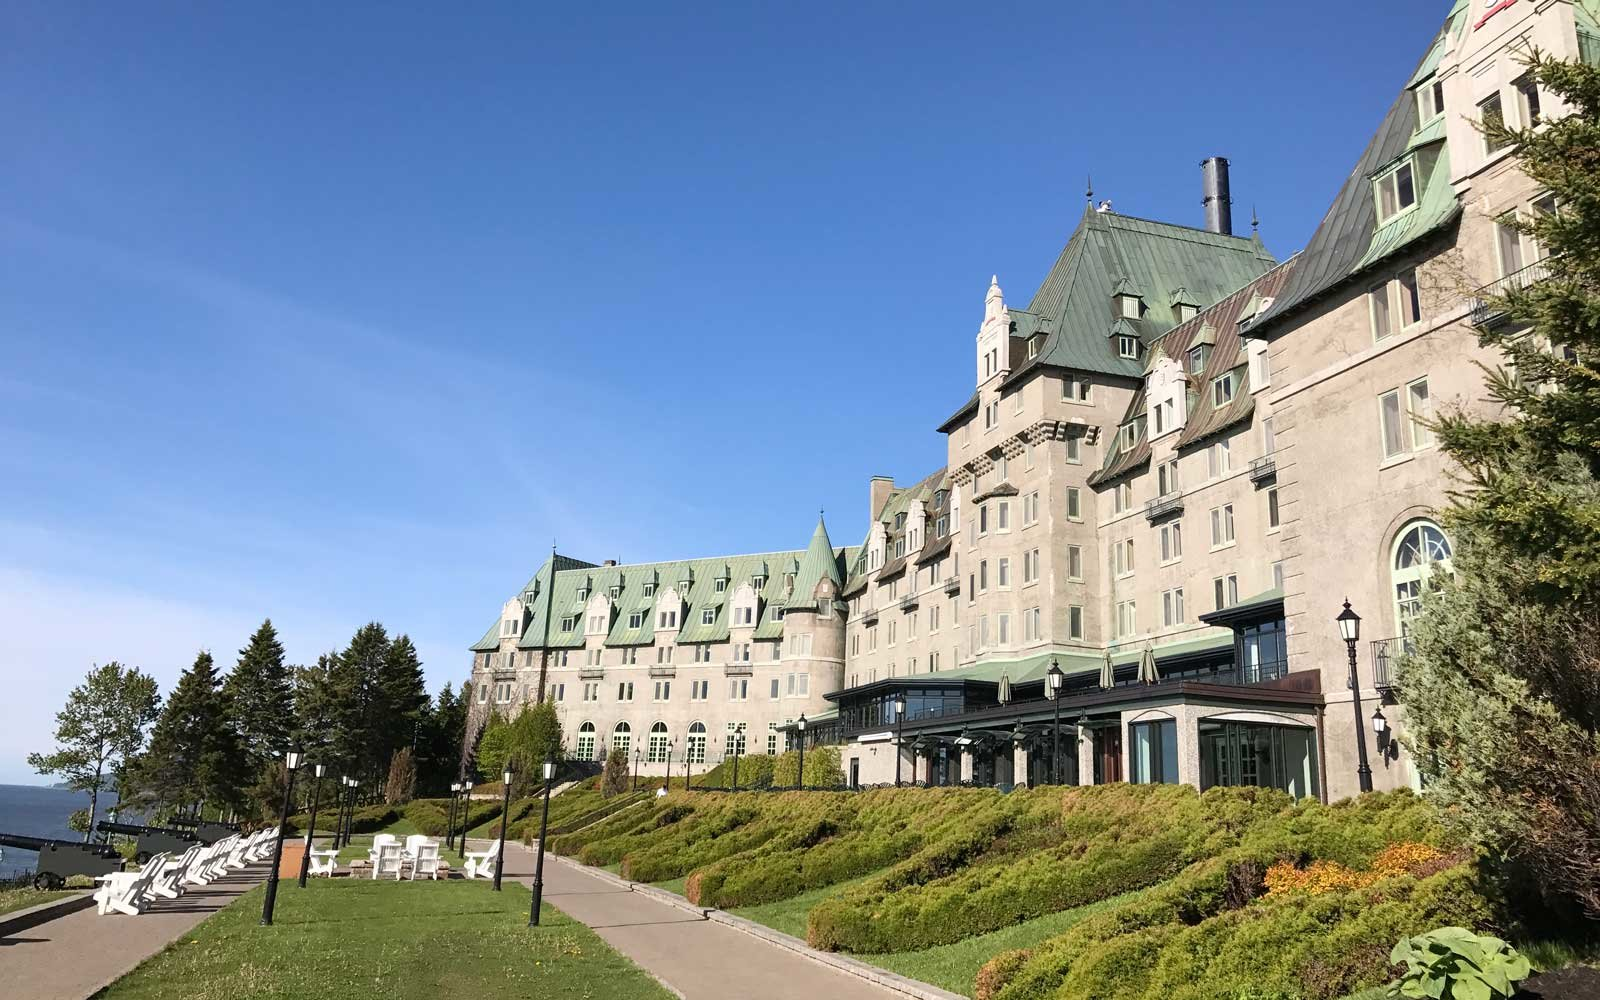 Fairmont Le Manoir Richelieu in La Malbaie, Quebec